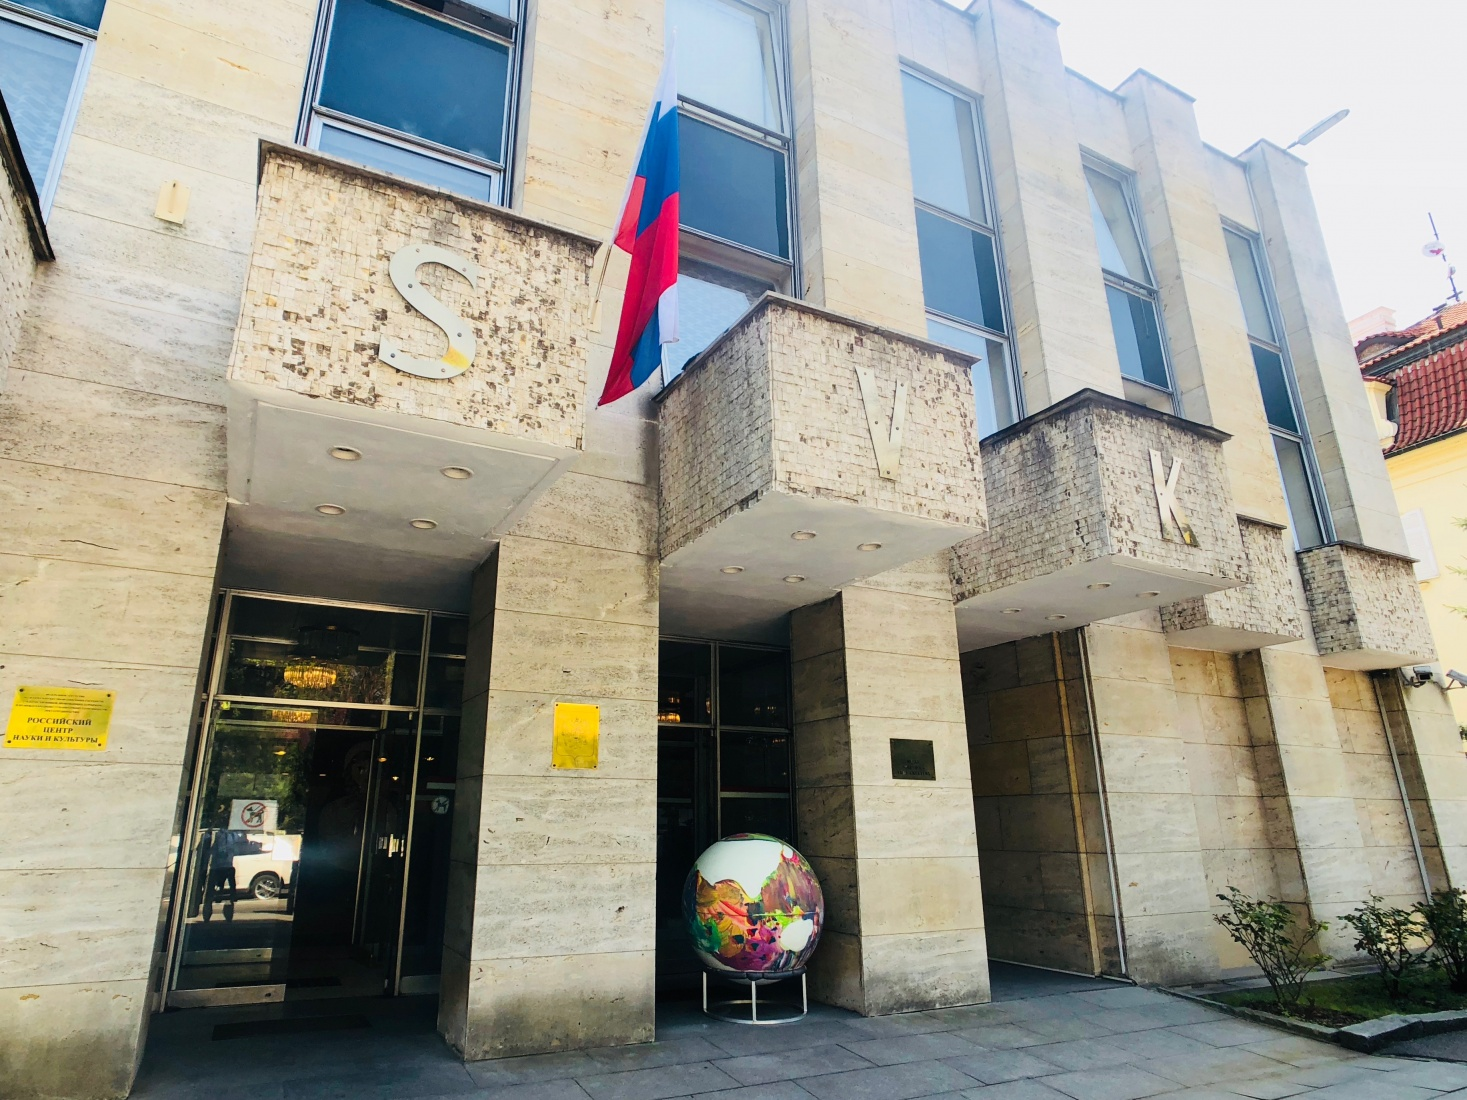 Russian Rossotrudnichestvo in Prague, the Russian Center for Science and Culture, in Bubeneč, where it is rumored that Michael Cohen, lawyer to American President Trump, met with Russian officials in summer 2016.